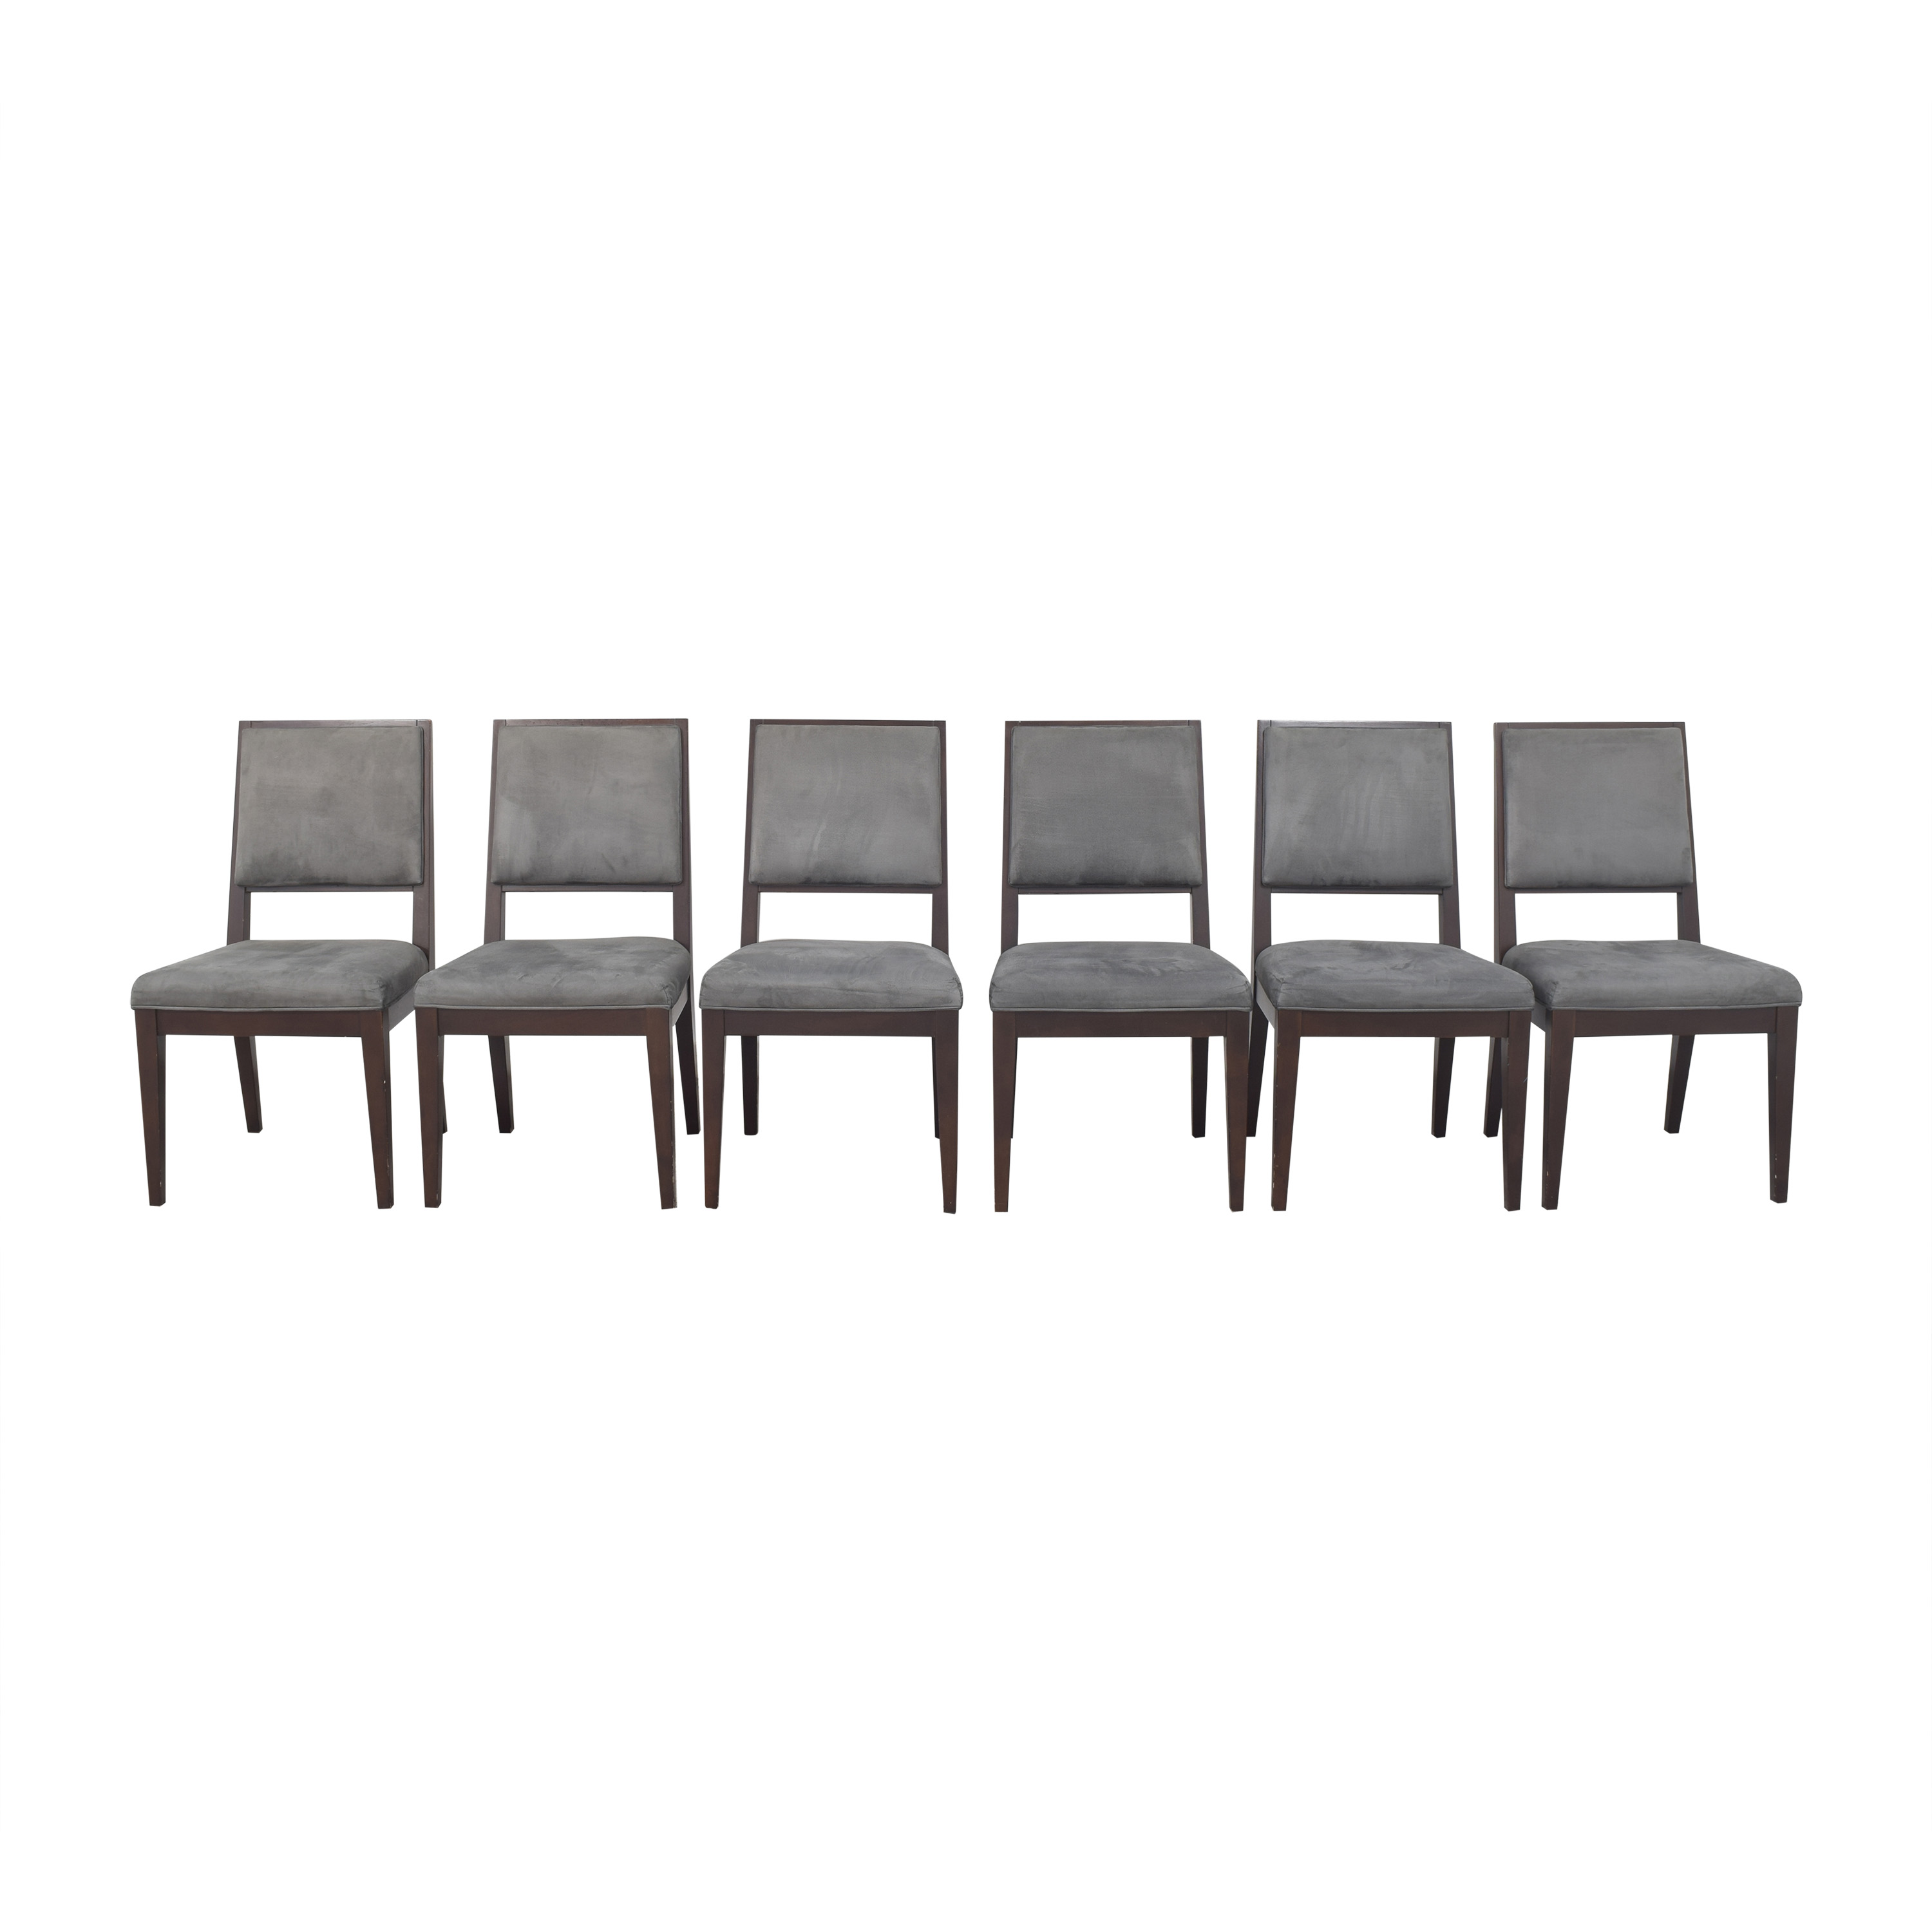 Crate & Barrel Square Back Dining Chairs Crate & Barrel